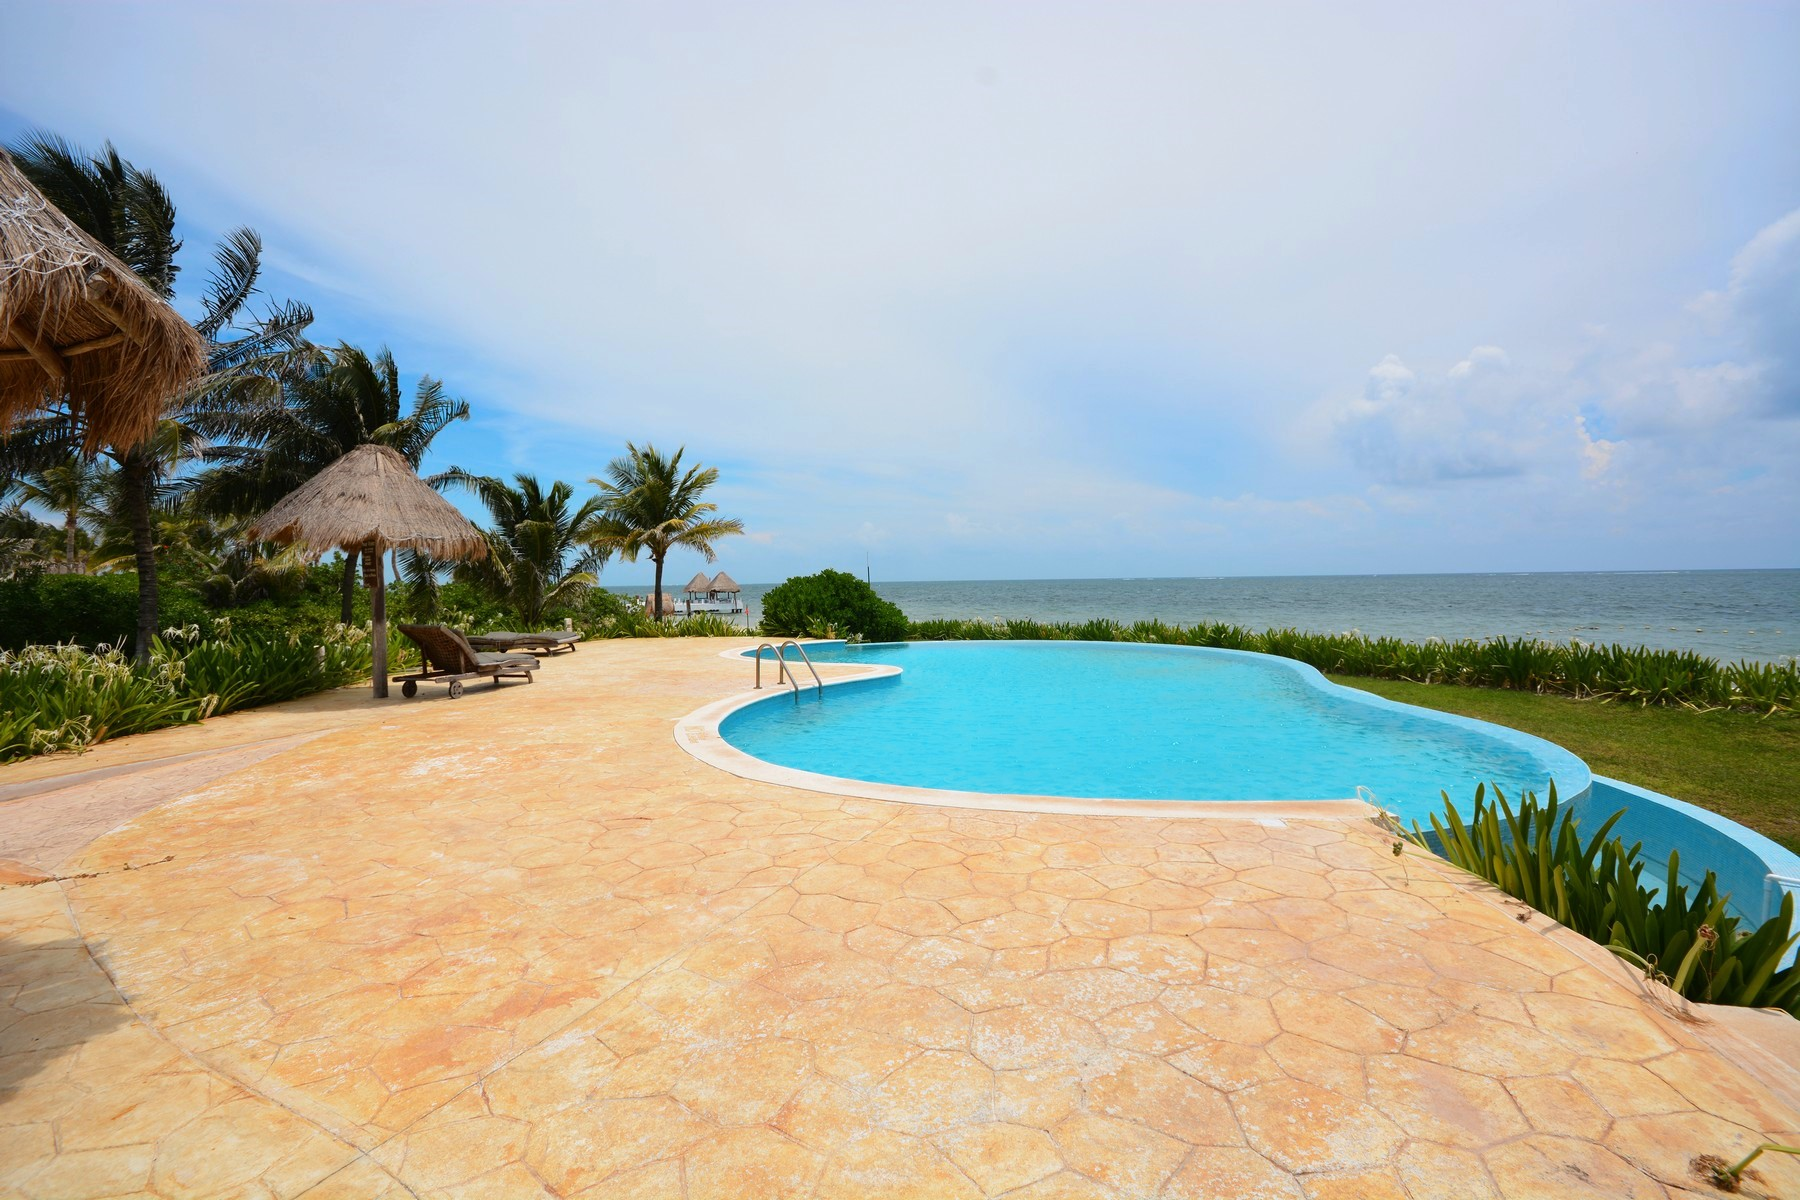 Single Family Home for Sale at SOL VILLAGE Villa Del Sol SM-11 MZ-05 L-1 Puerto Morelos, Quintana Roo 77580 Mexico